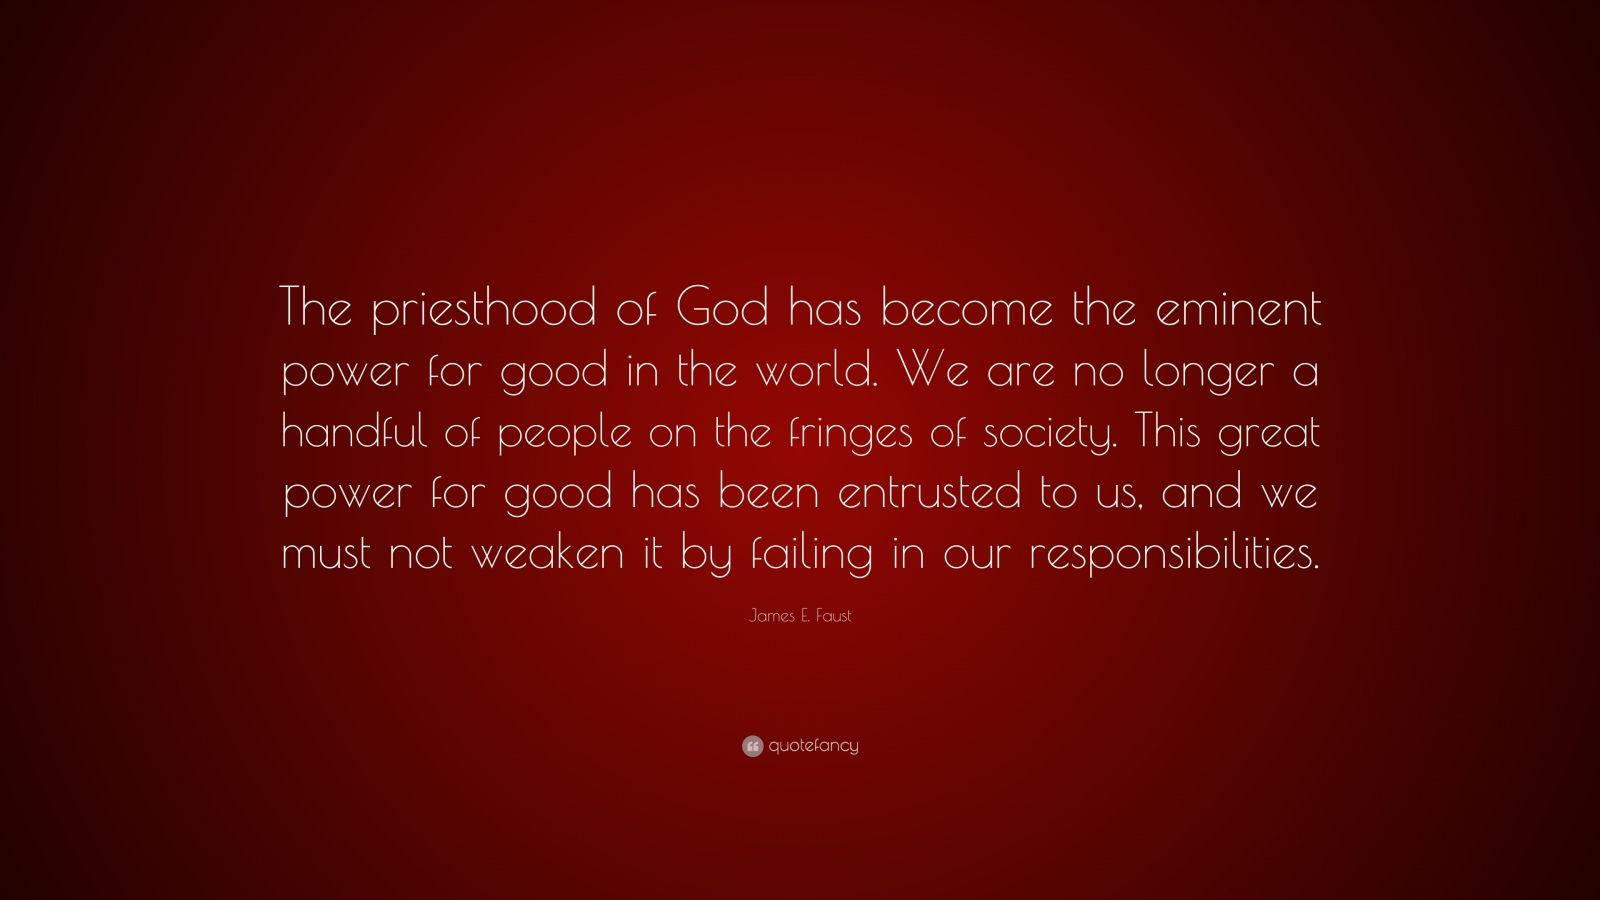 """James E. Faust Quote: """"The priesthood of God has become the eminent power for good in the world. We are no longer a handful of people on the fringes of society. This great power for good has been entrusted to us, and we must not weaken it by failing in our responsibilities."""""""